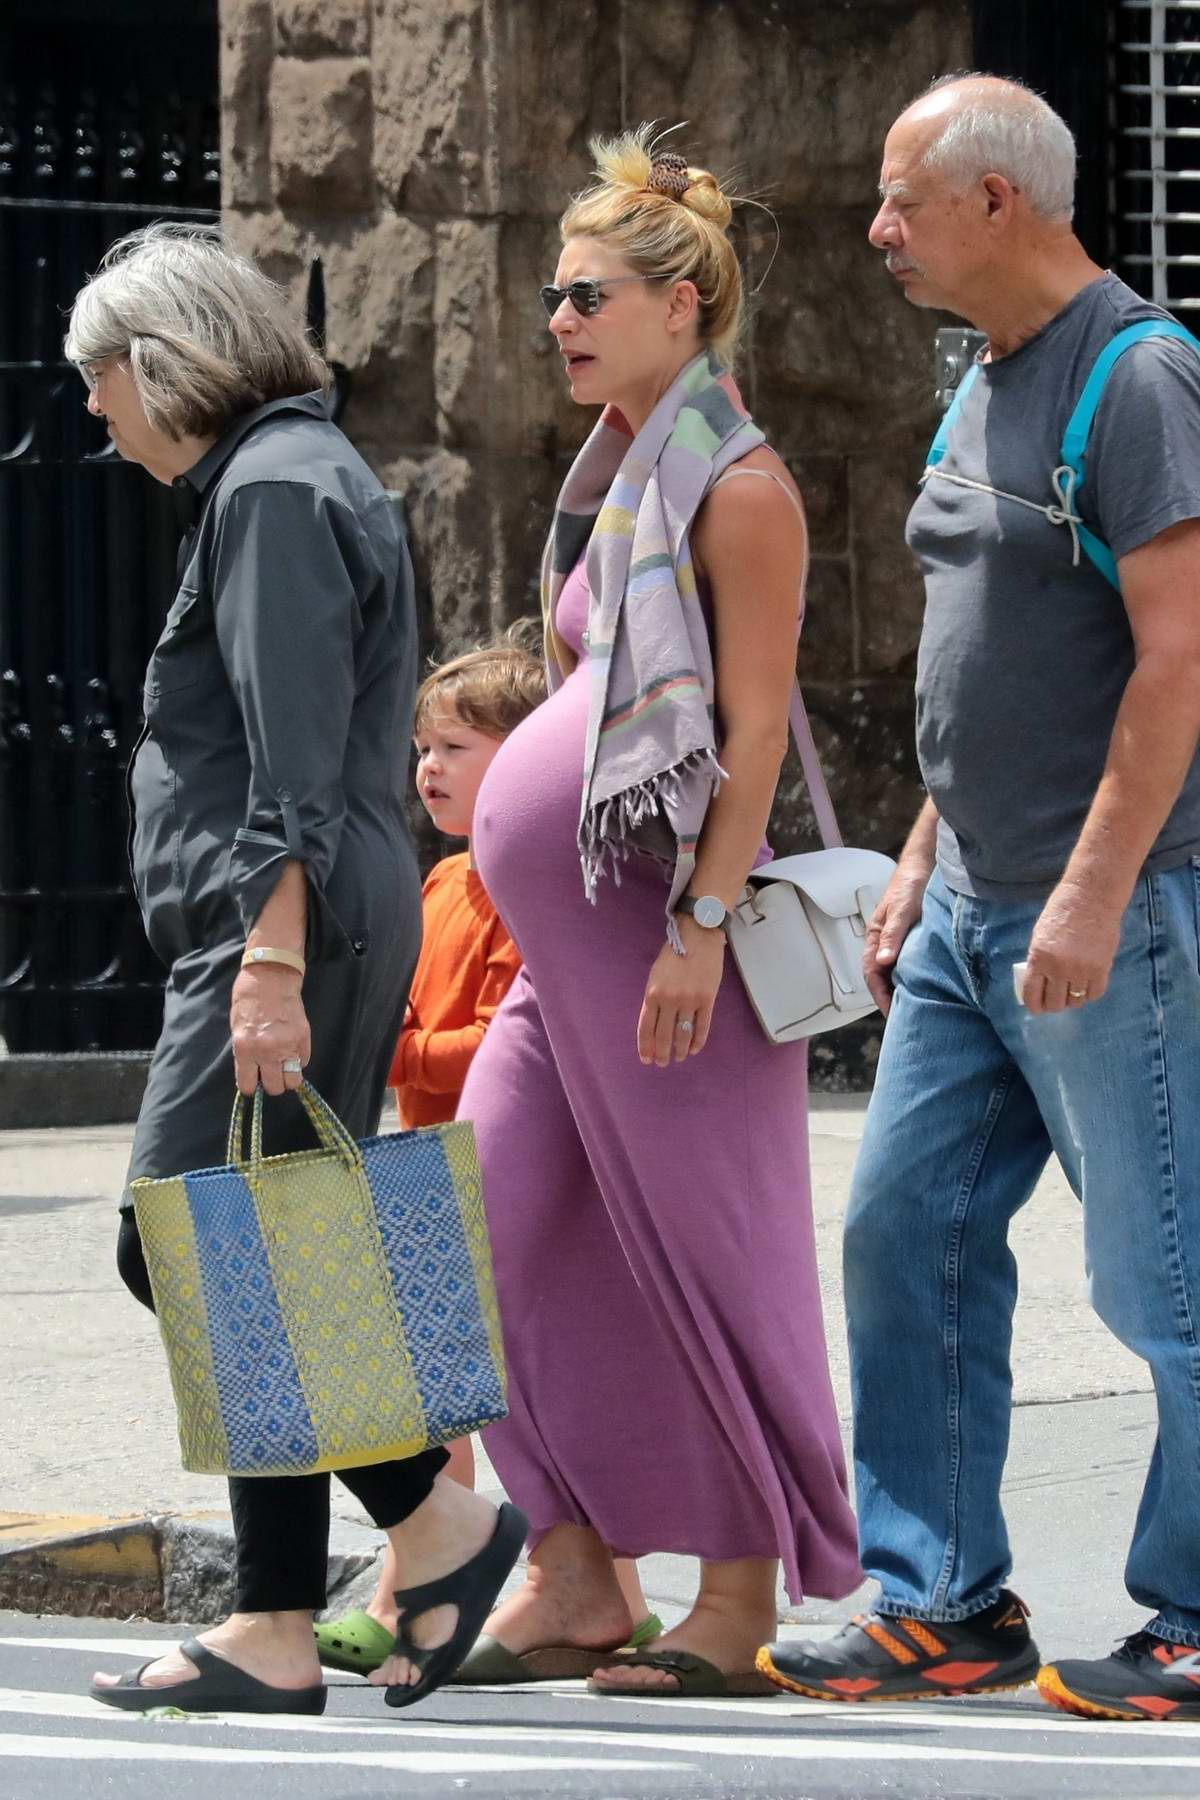 Claire Danes shows off her baby bump while out with her family in New York